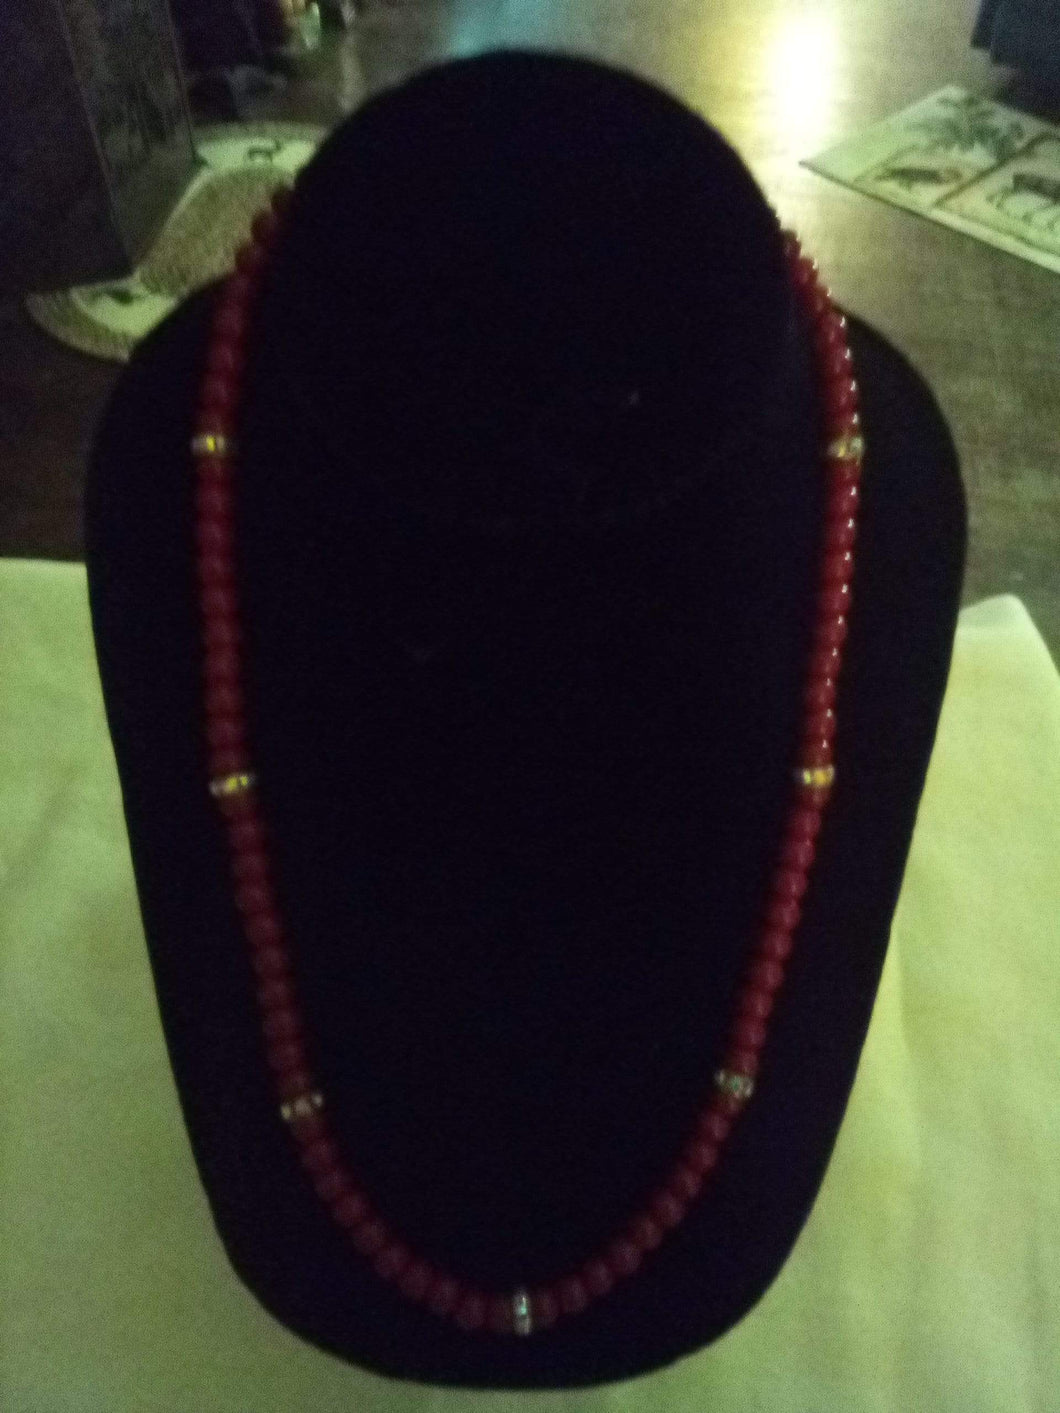 Red beaded necklace with shiny dividers - B&P'sringsnthings